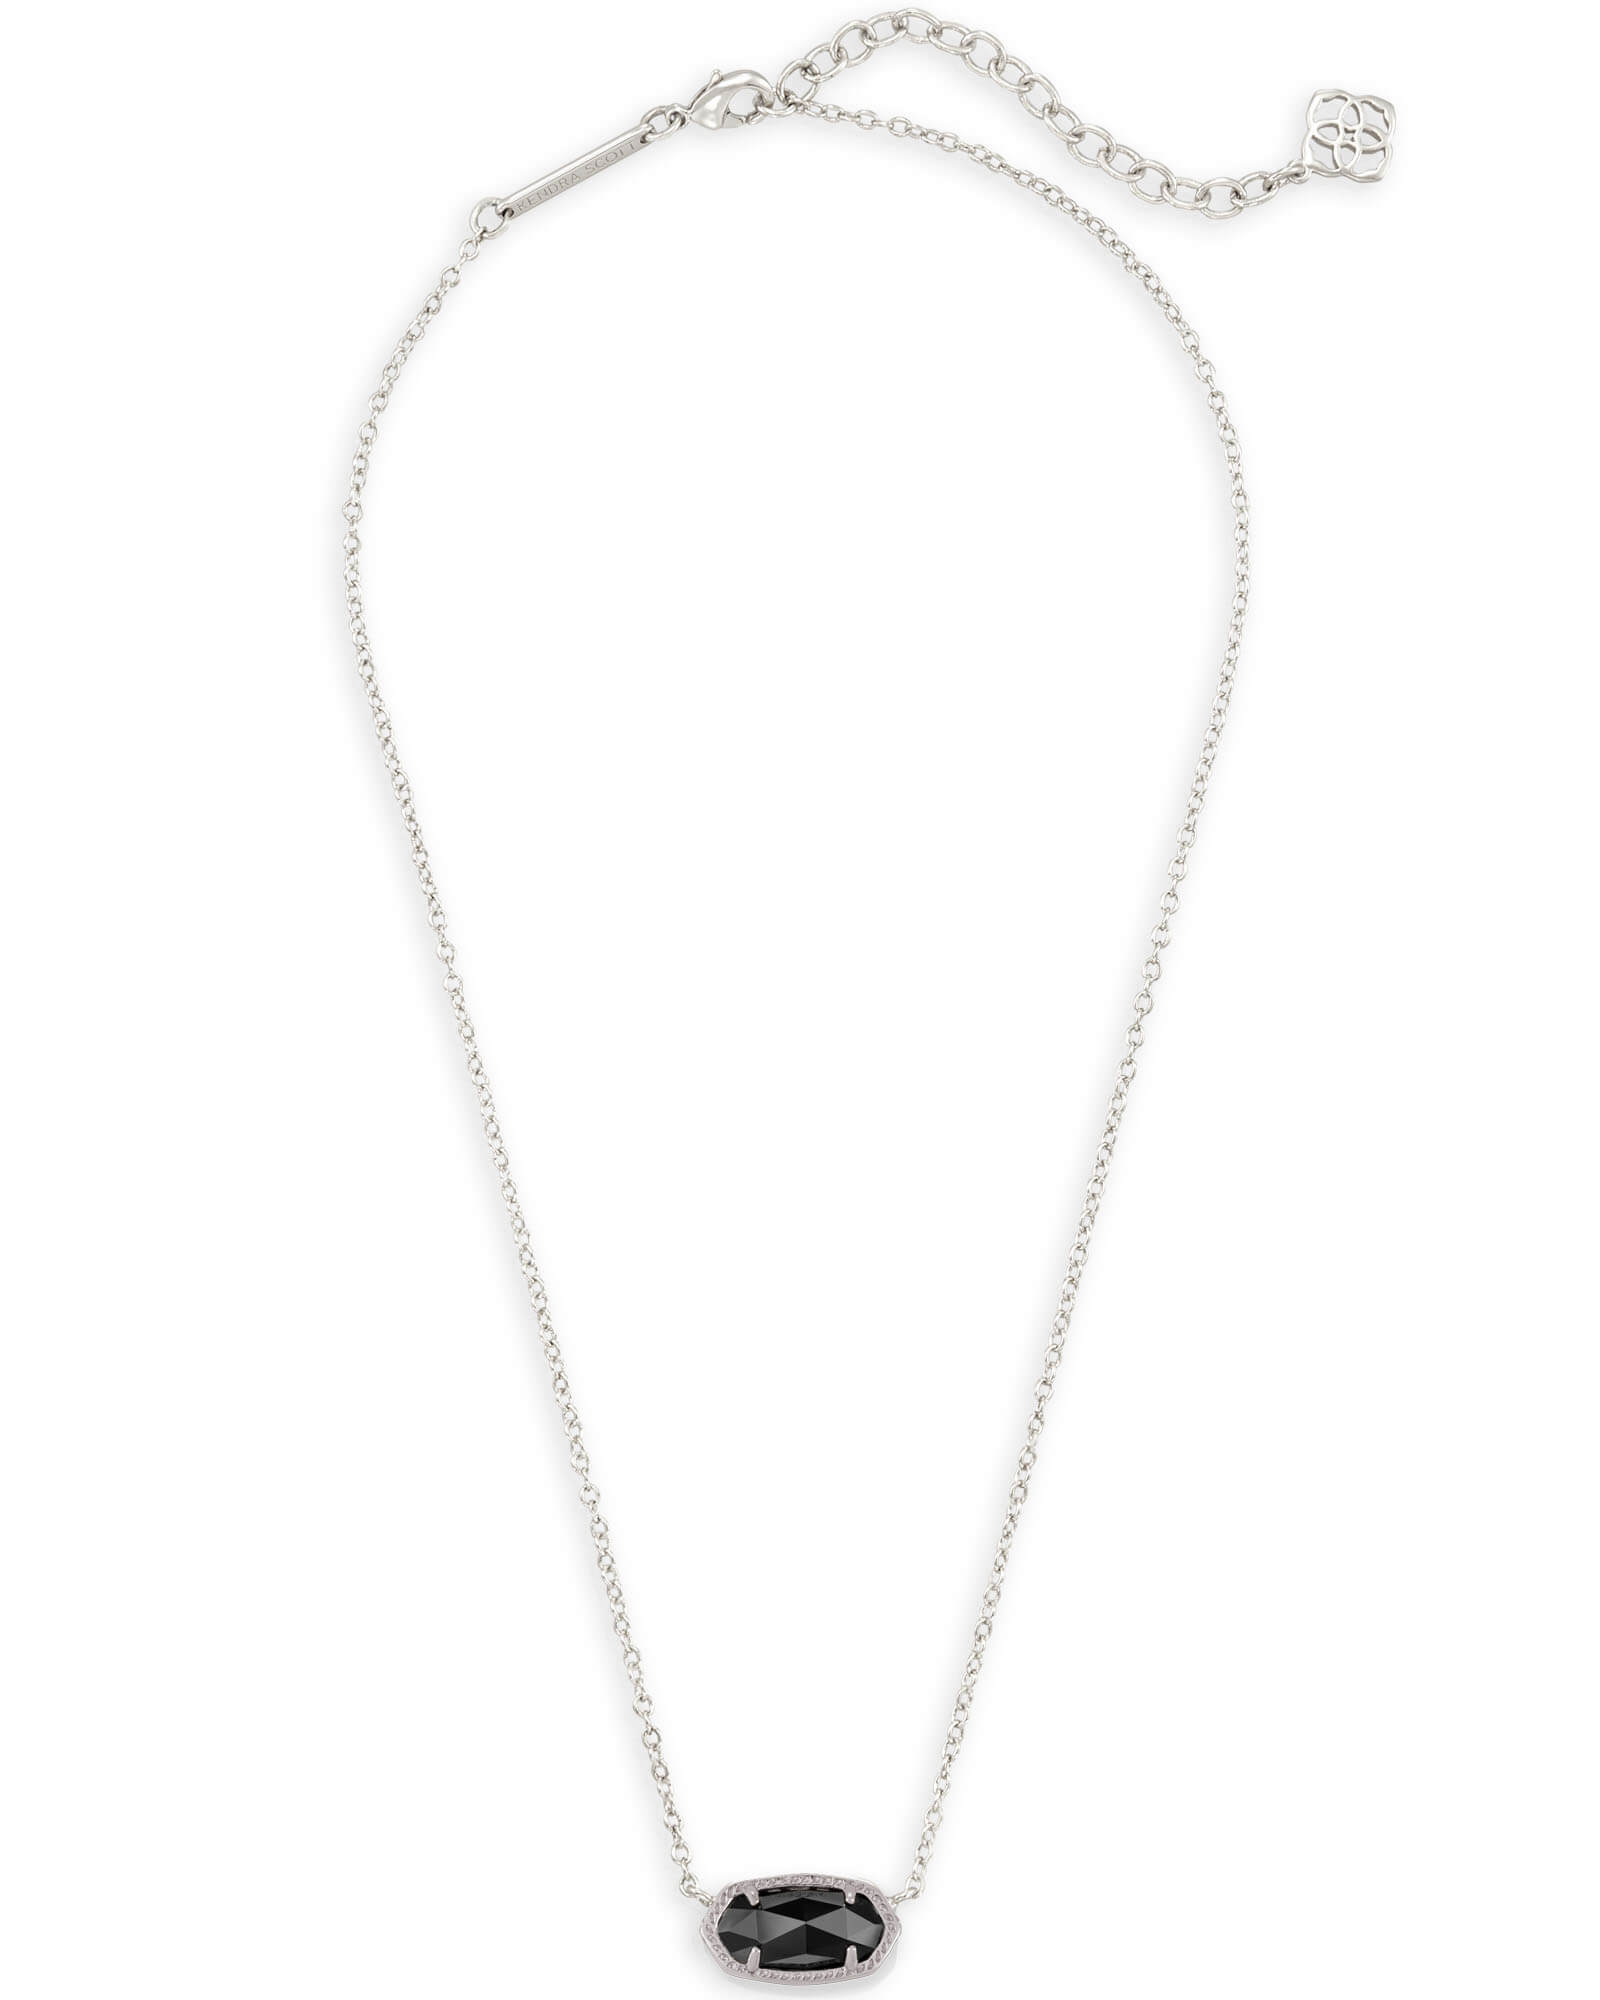 Elisa Silver Pendant Necklace in Black Opaque Glass